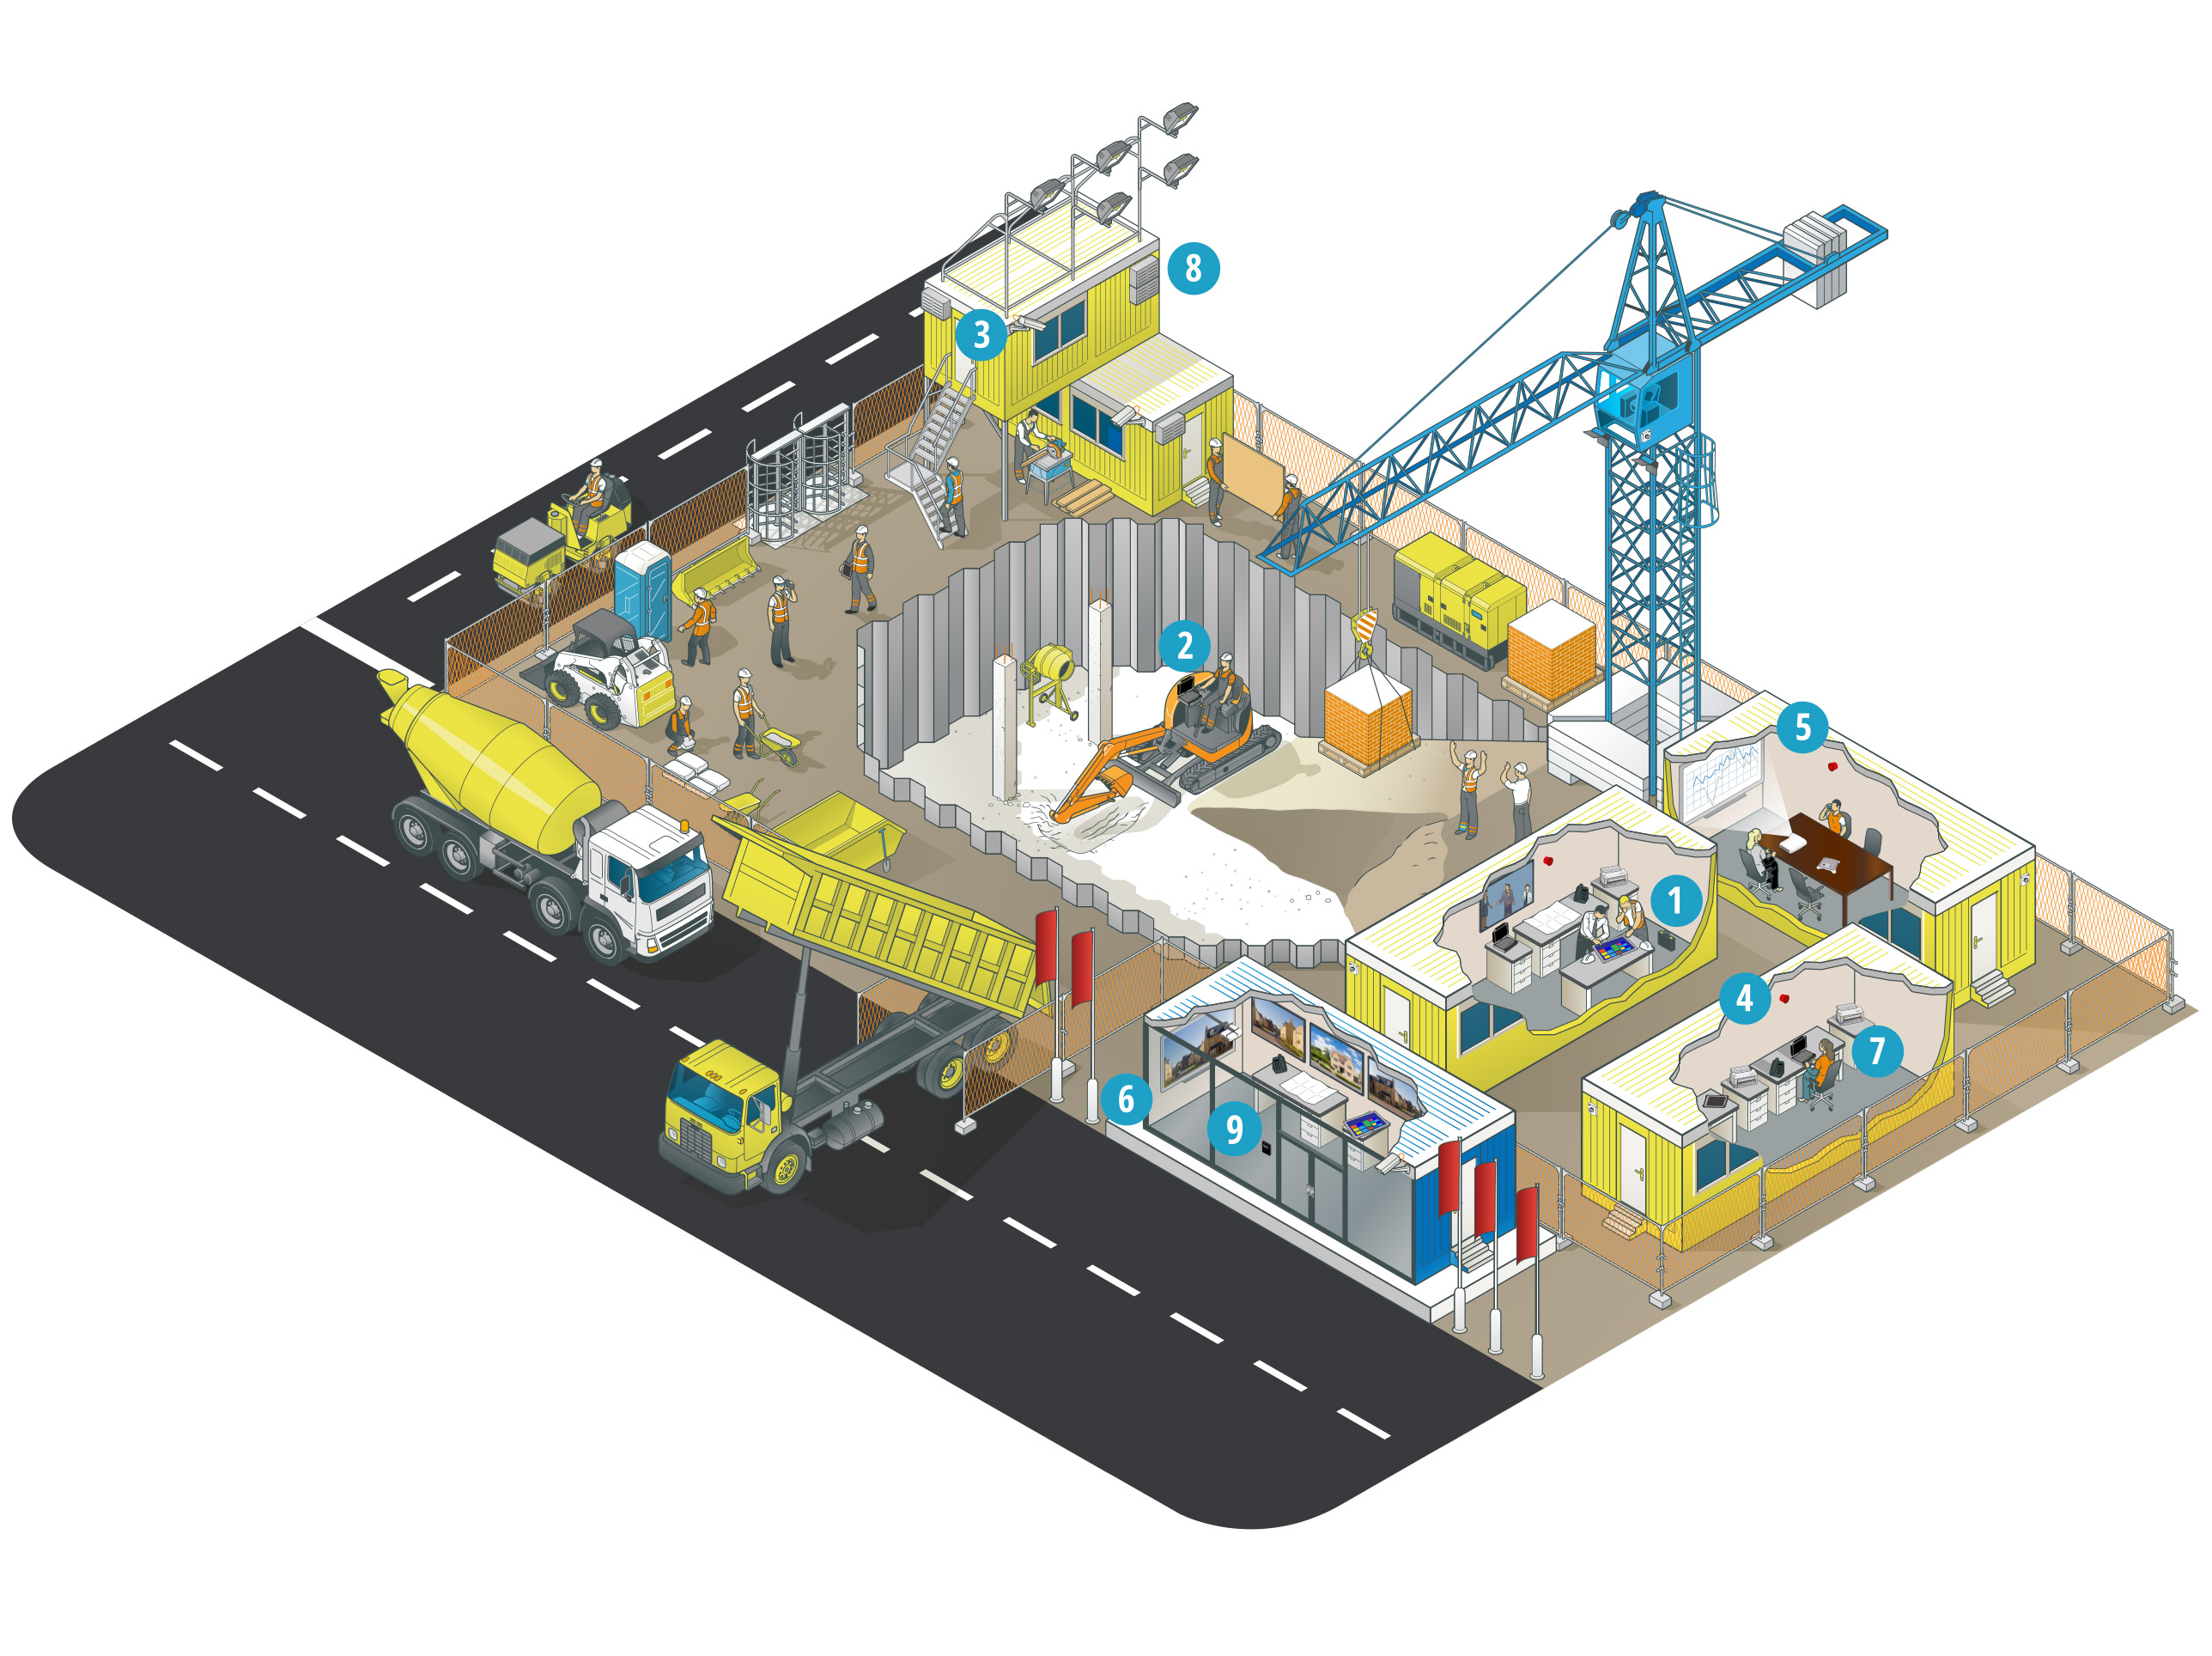 How do Panasonic solutions support the construction and engineering sector?